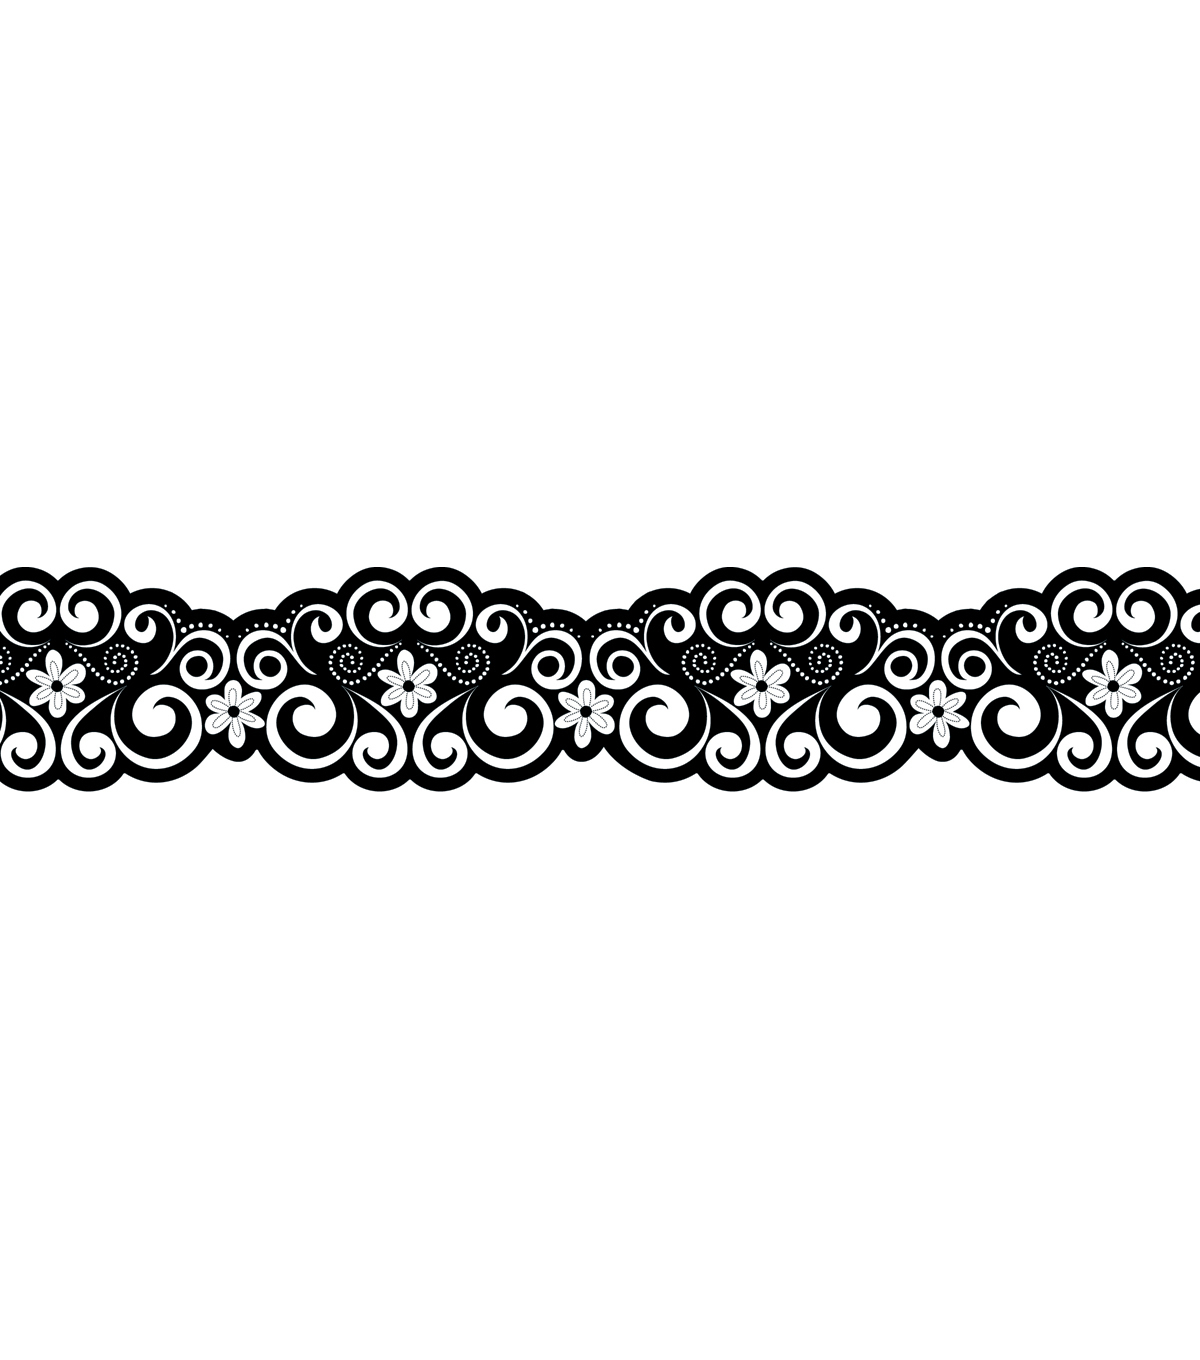 Bw Collection: Classic Curls Border